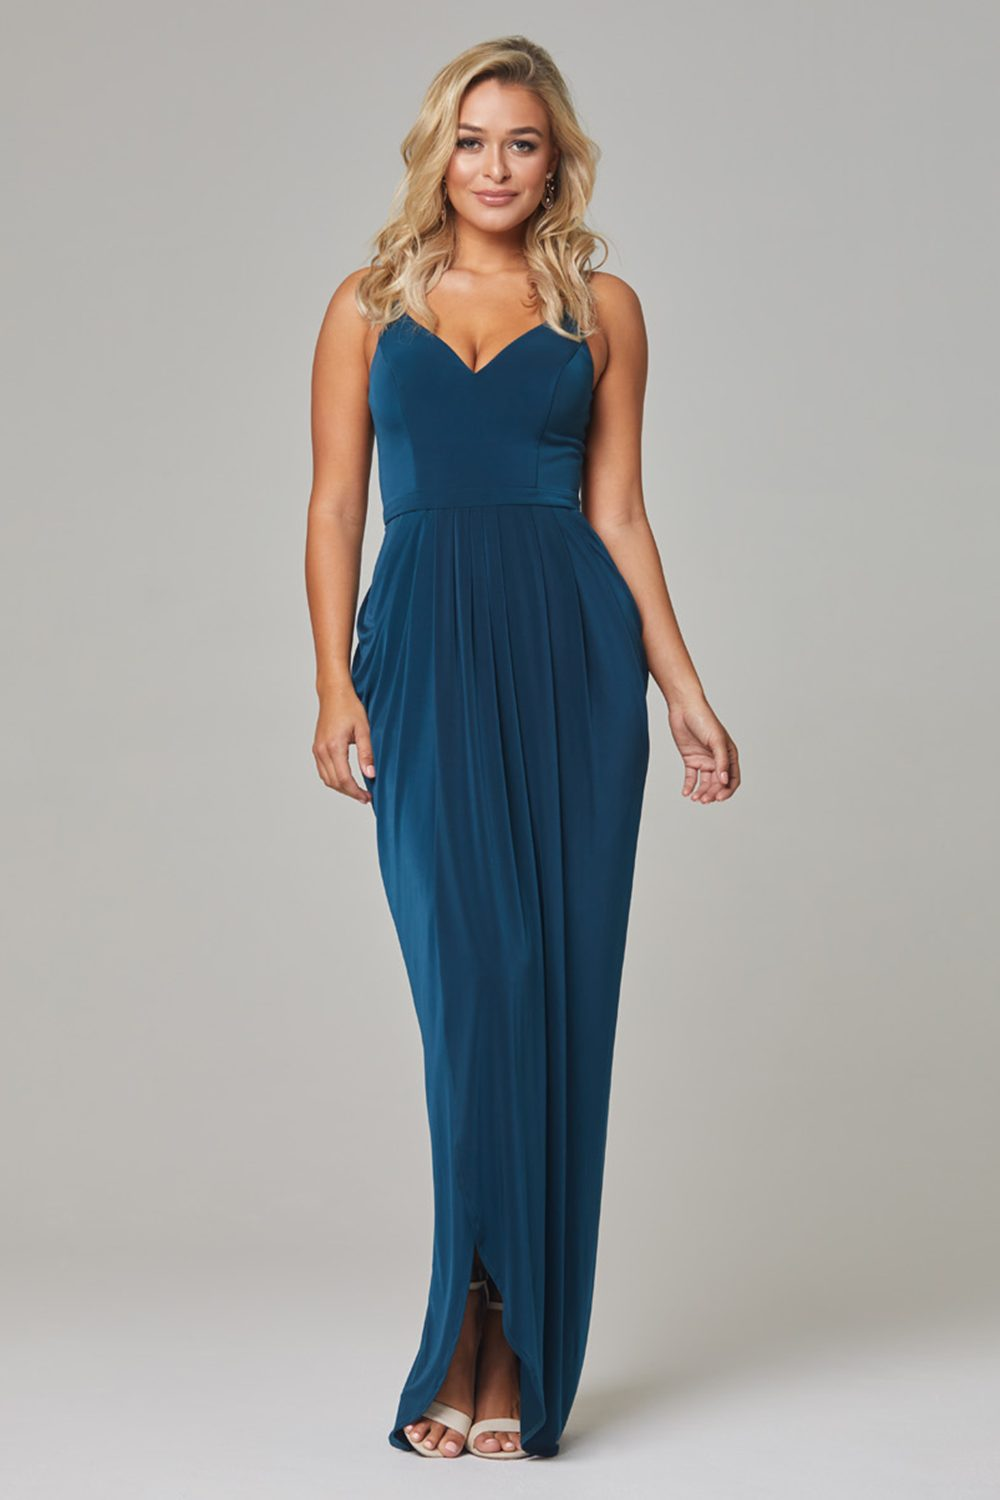 Claire Bridesmaid Dress - TO801 - Teal